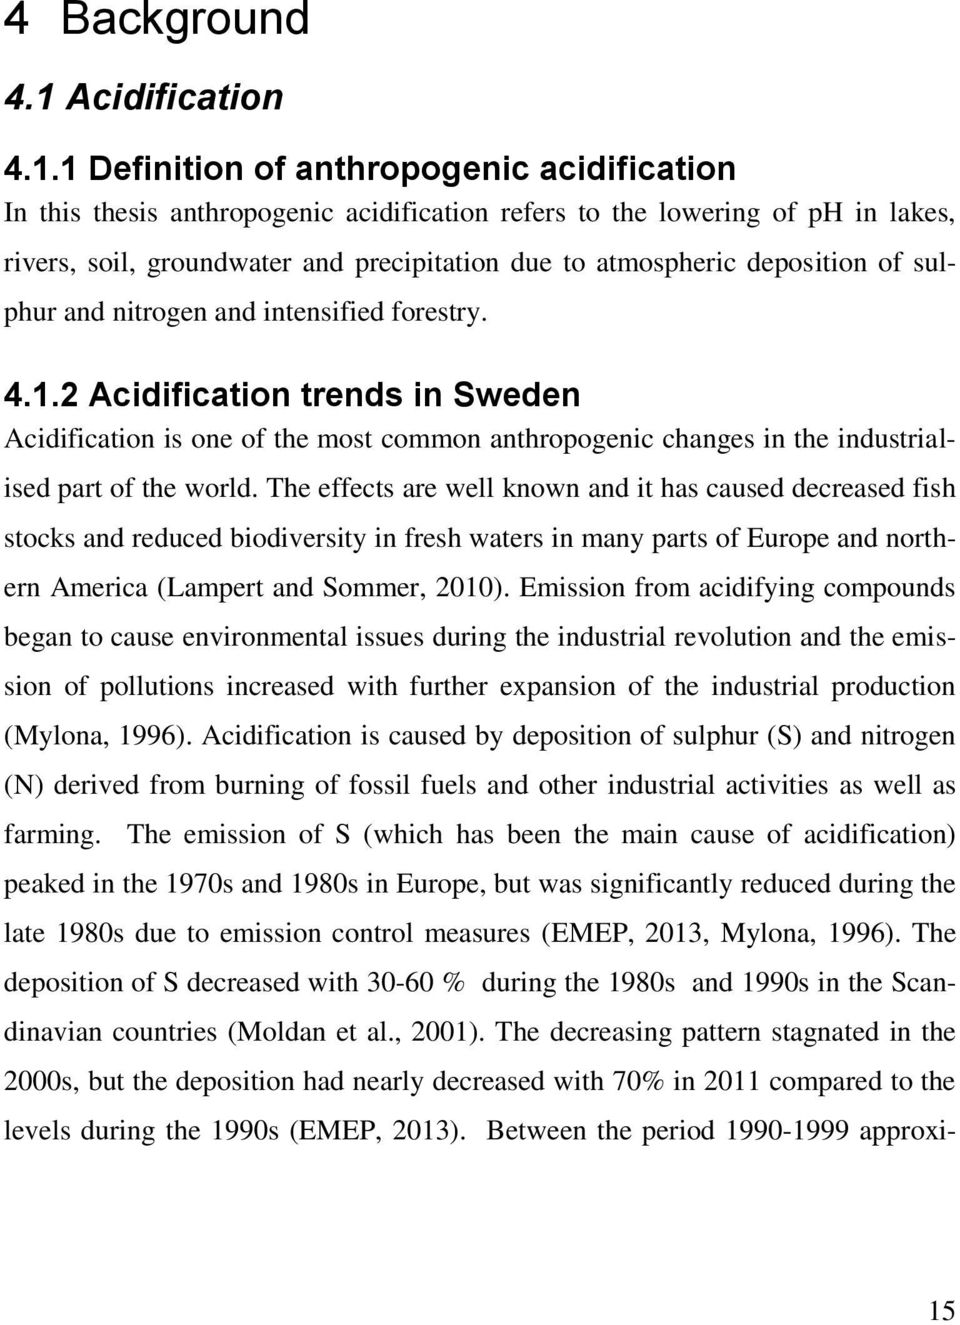 1 Definition of anthropogenic acidification In this thesis anthropogenic acidification refers to the lowering of ph in lakes, rivers, soil, groundwater and precipitation due to atmospheric deposition